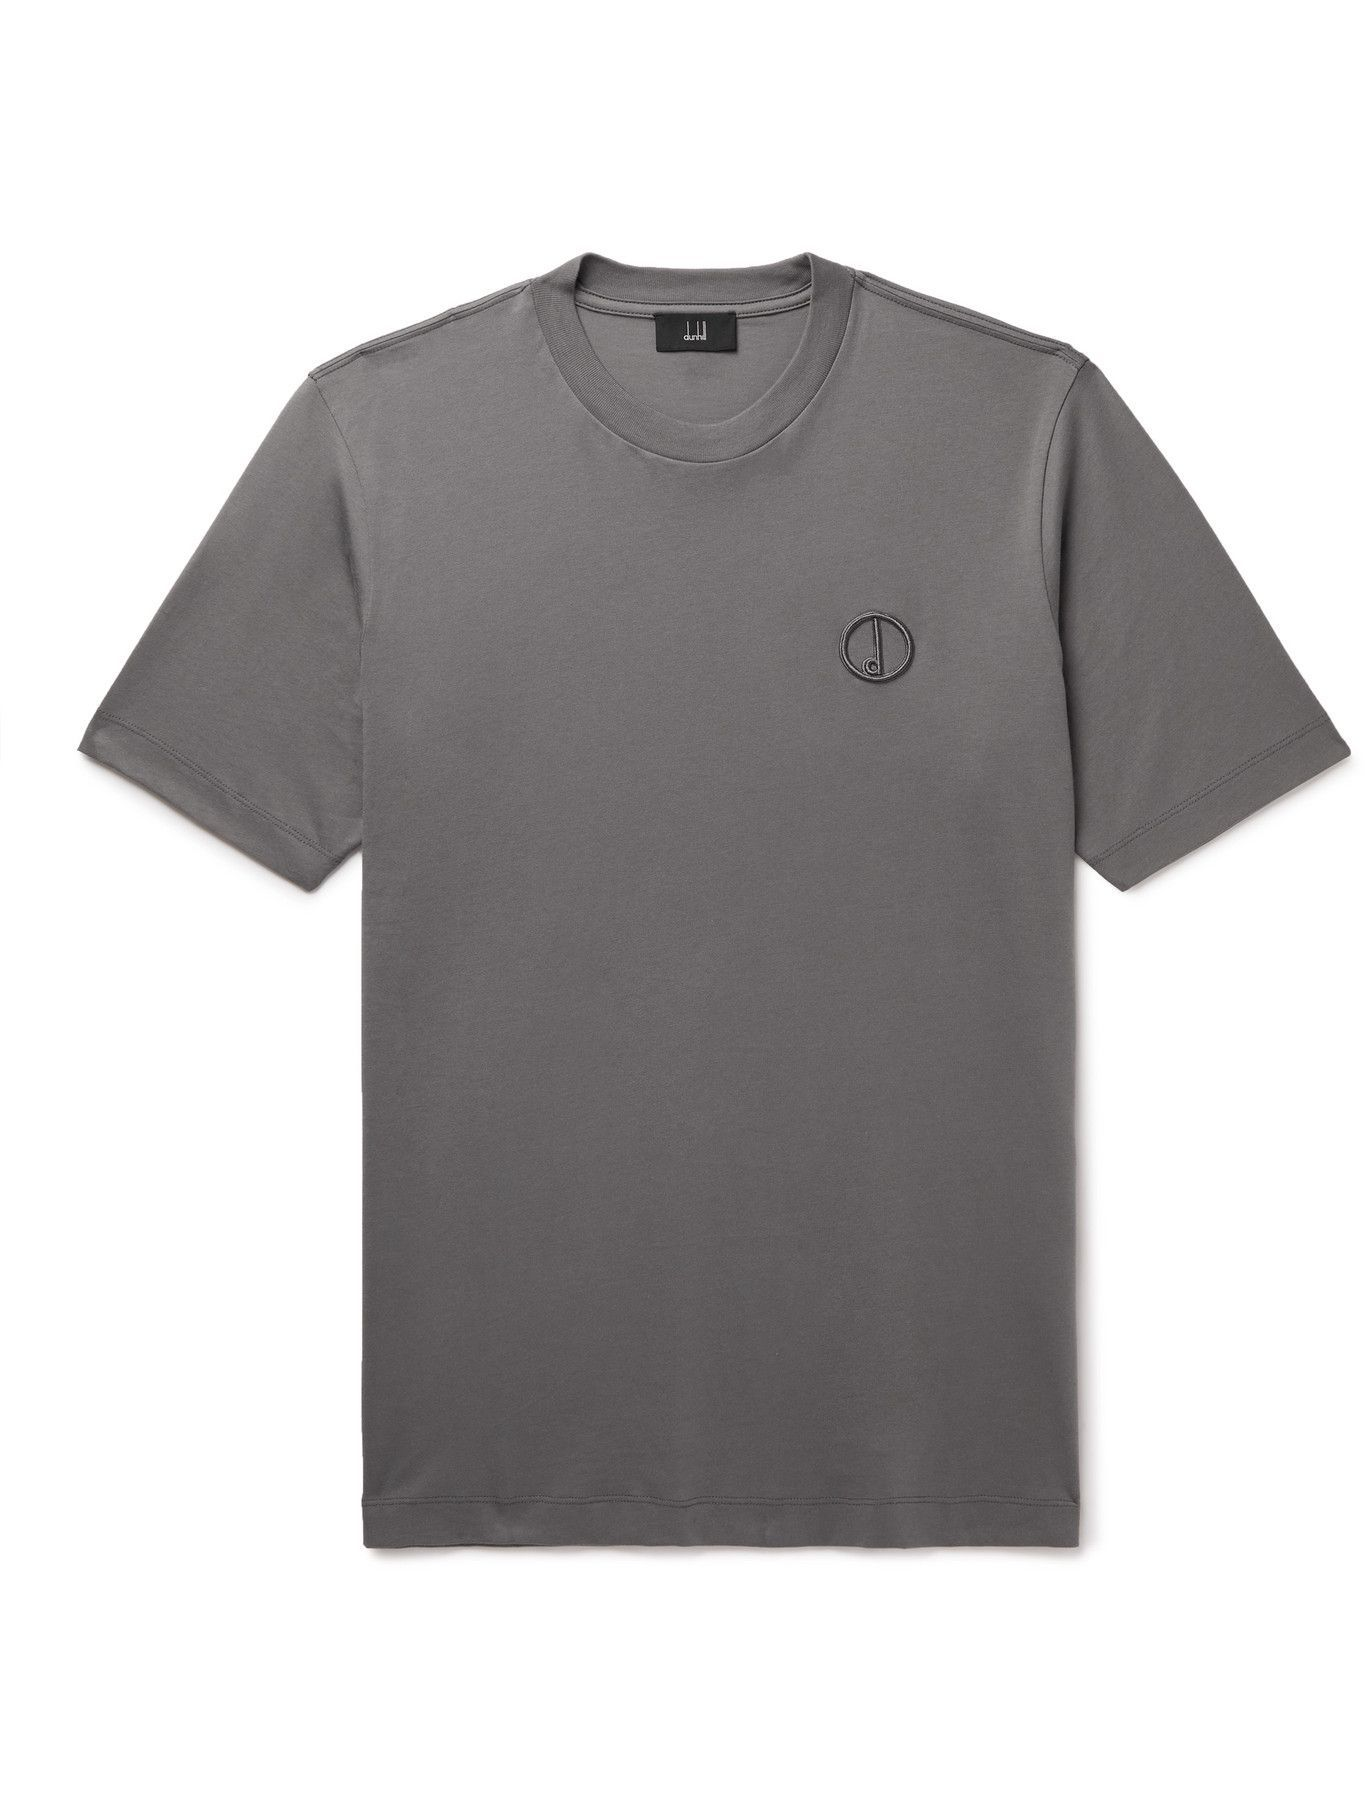 Photo: DUNHILL - Logo-Embroidered Cotton-Jersey T-Shirt - Gray